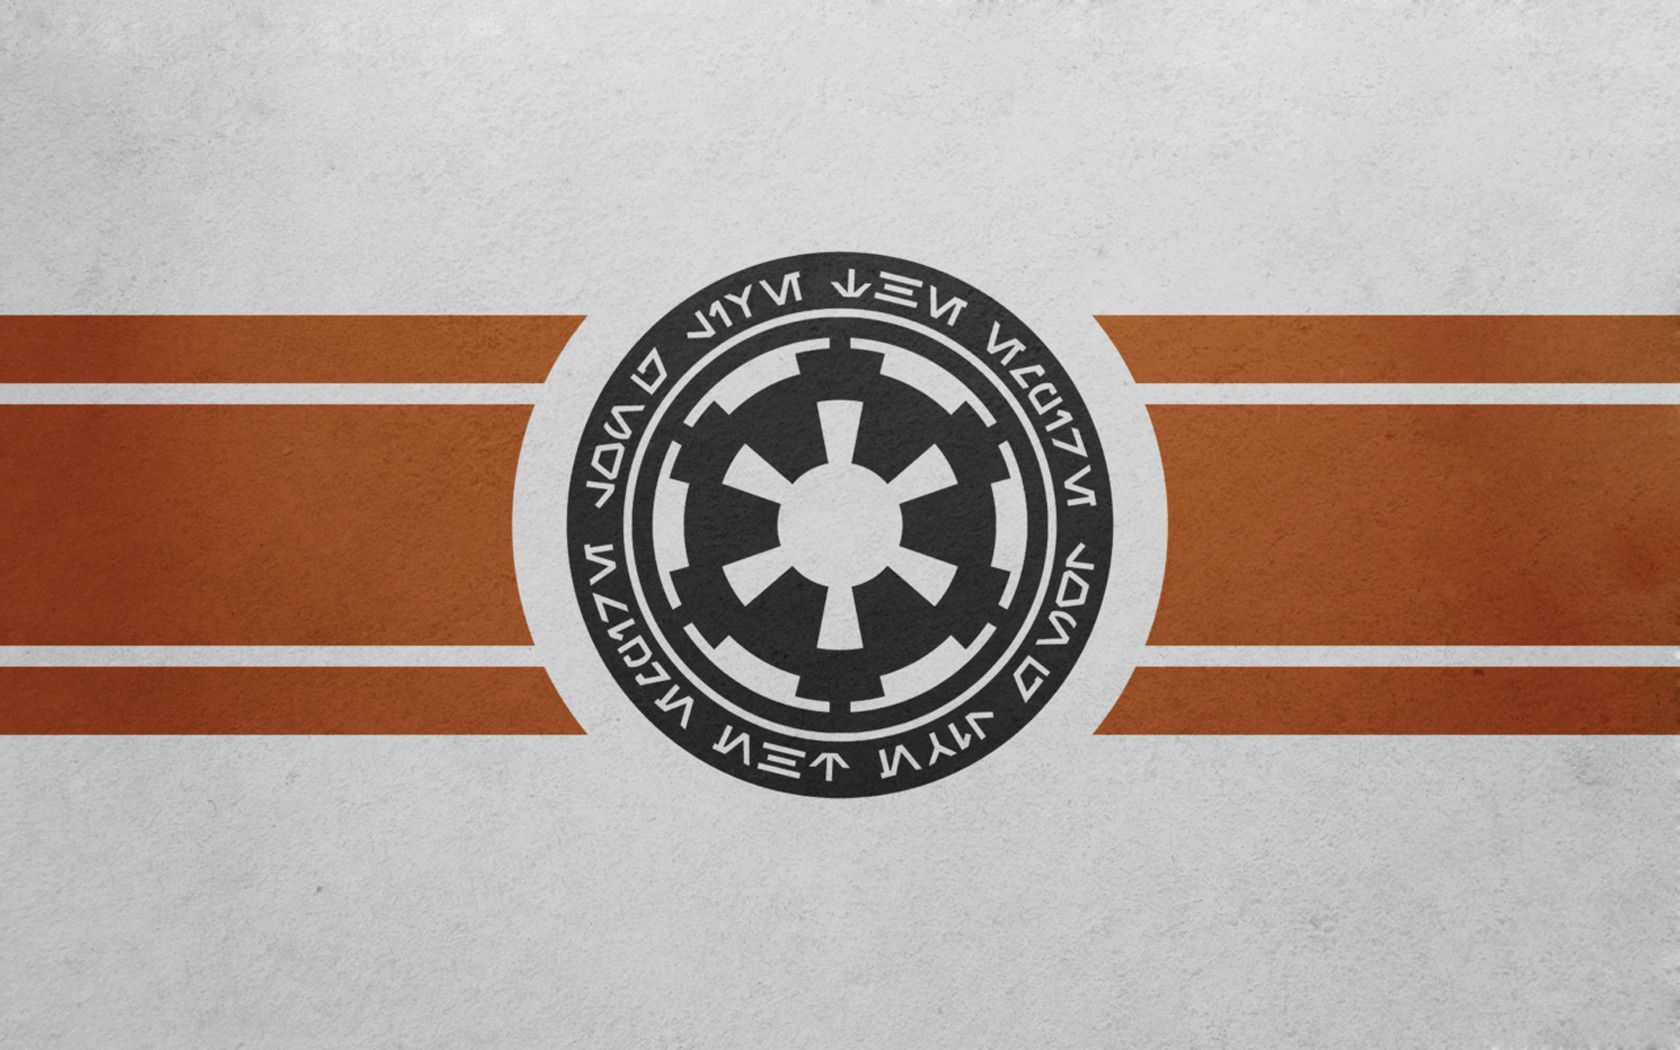 Star Wars Empire Wallpapers High Quality Resolution Star Wars Wallpaper Empire Wallpaper Star Destroyer Wallpaper